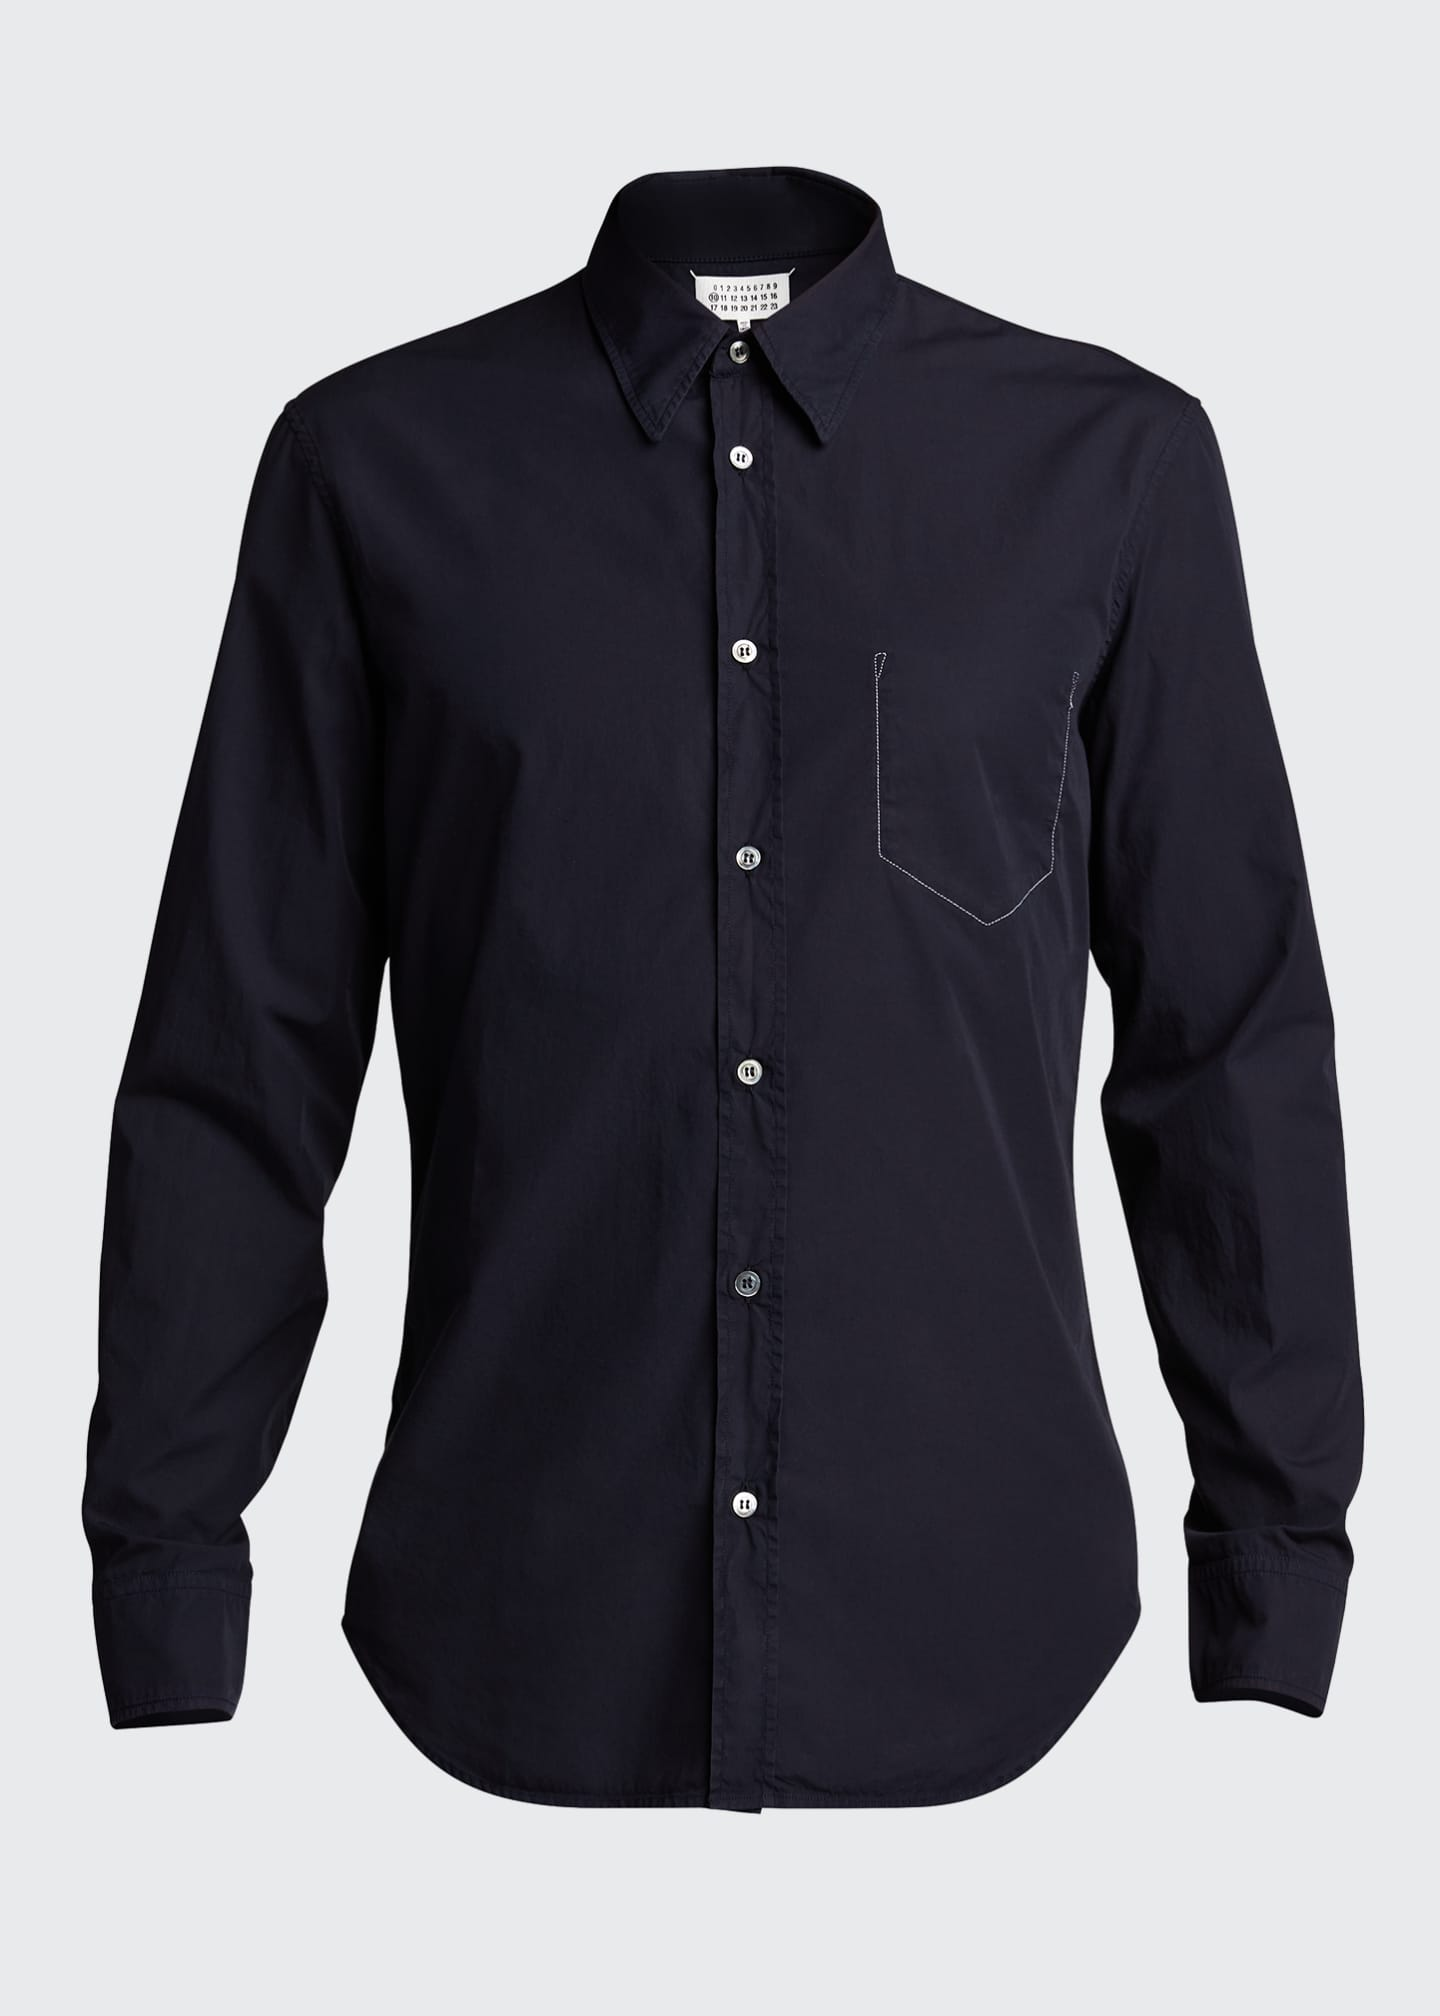 Image 5 of 5: Men's Garment-Dyed Sport Shirt w/ Pocket Stitching